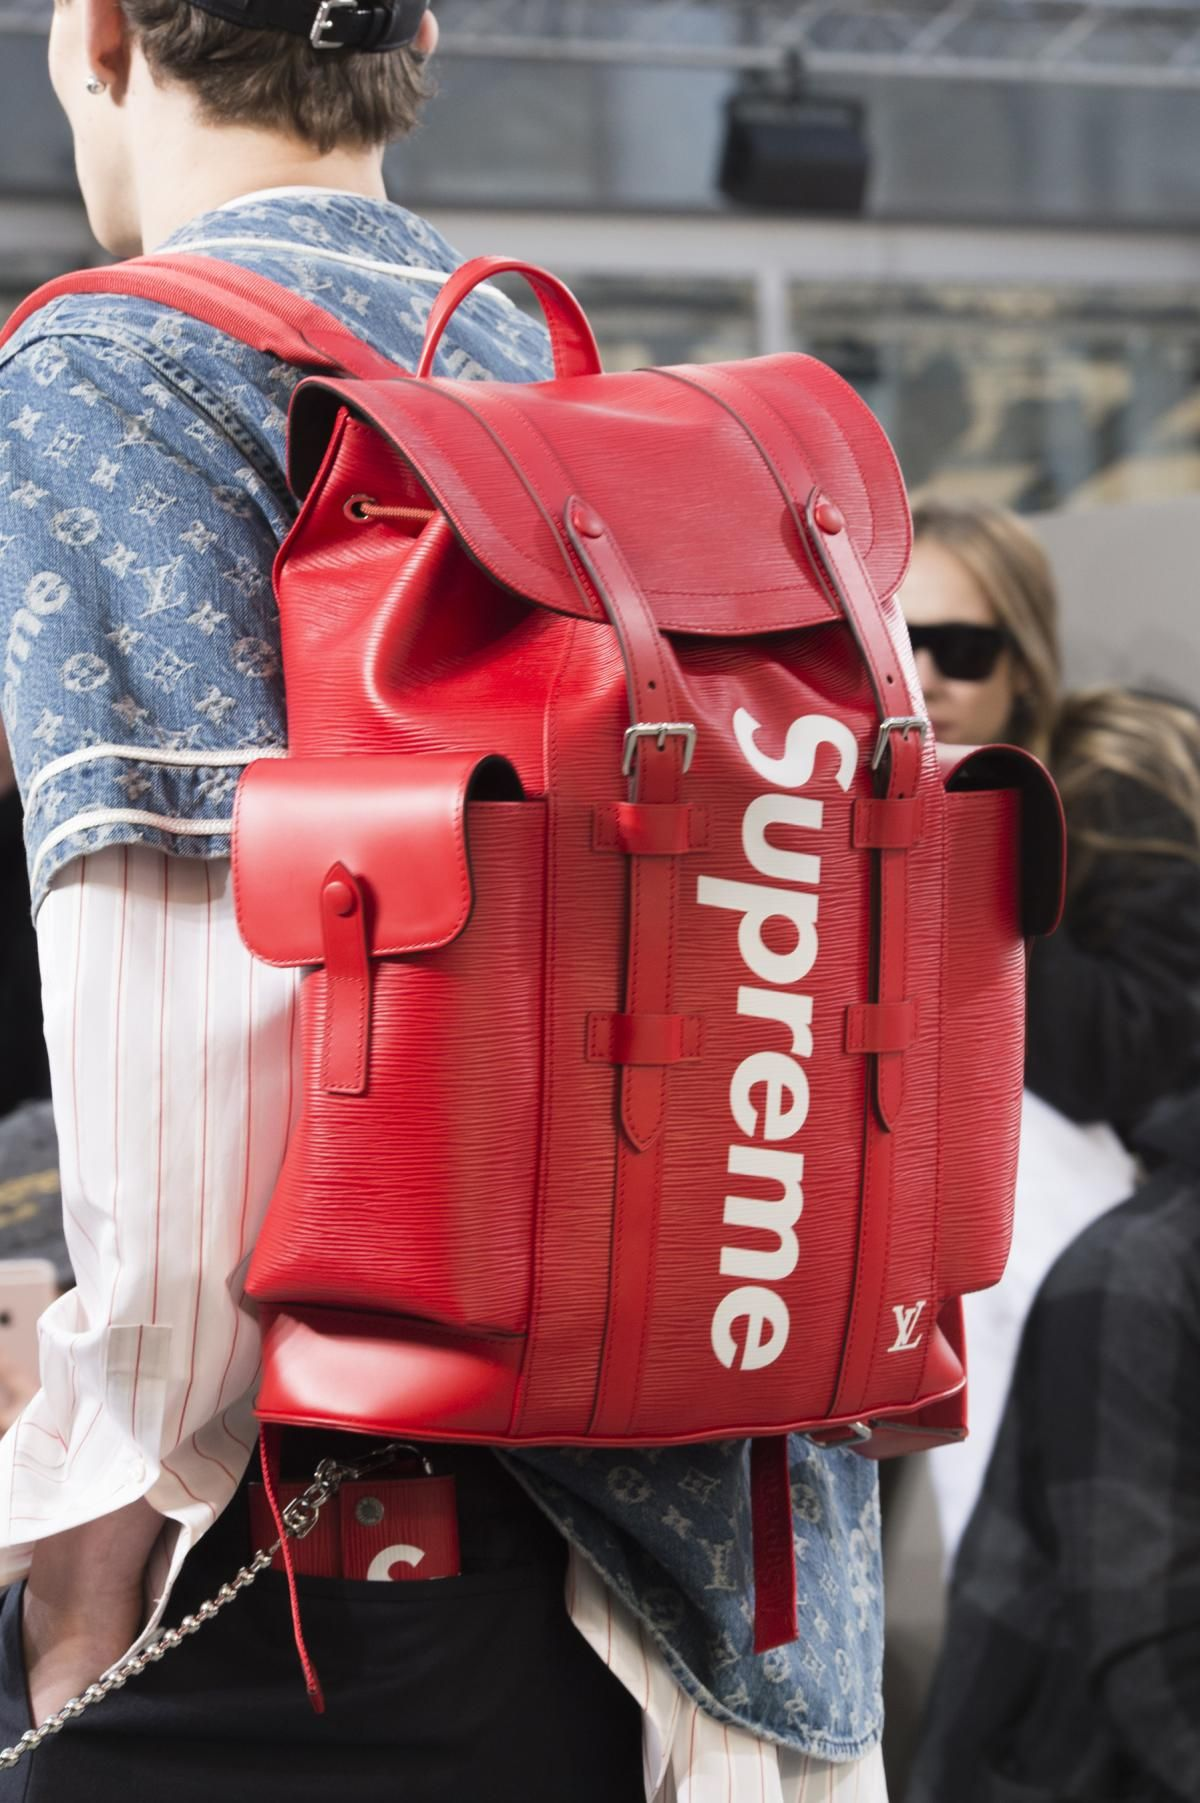 A look from the Louis Vuitton x Supreme collaboration. Photo: Imaxtree.